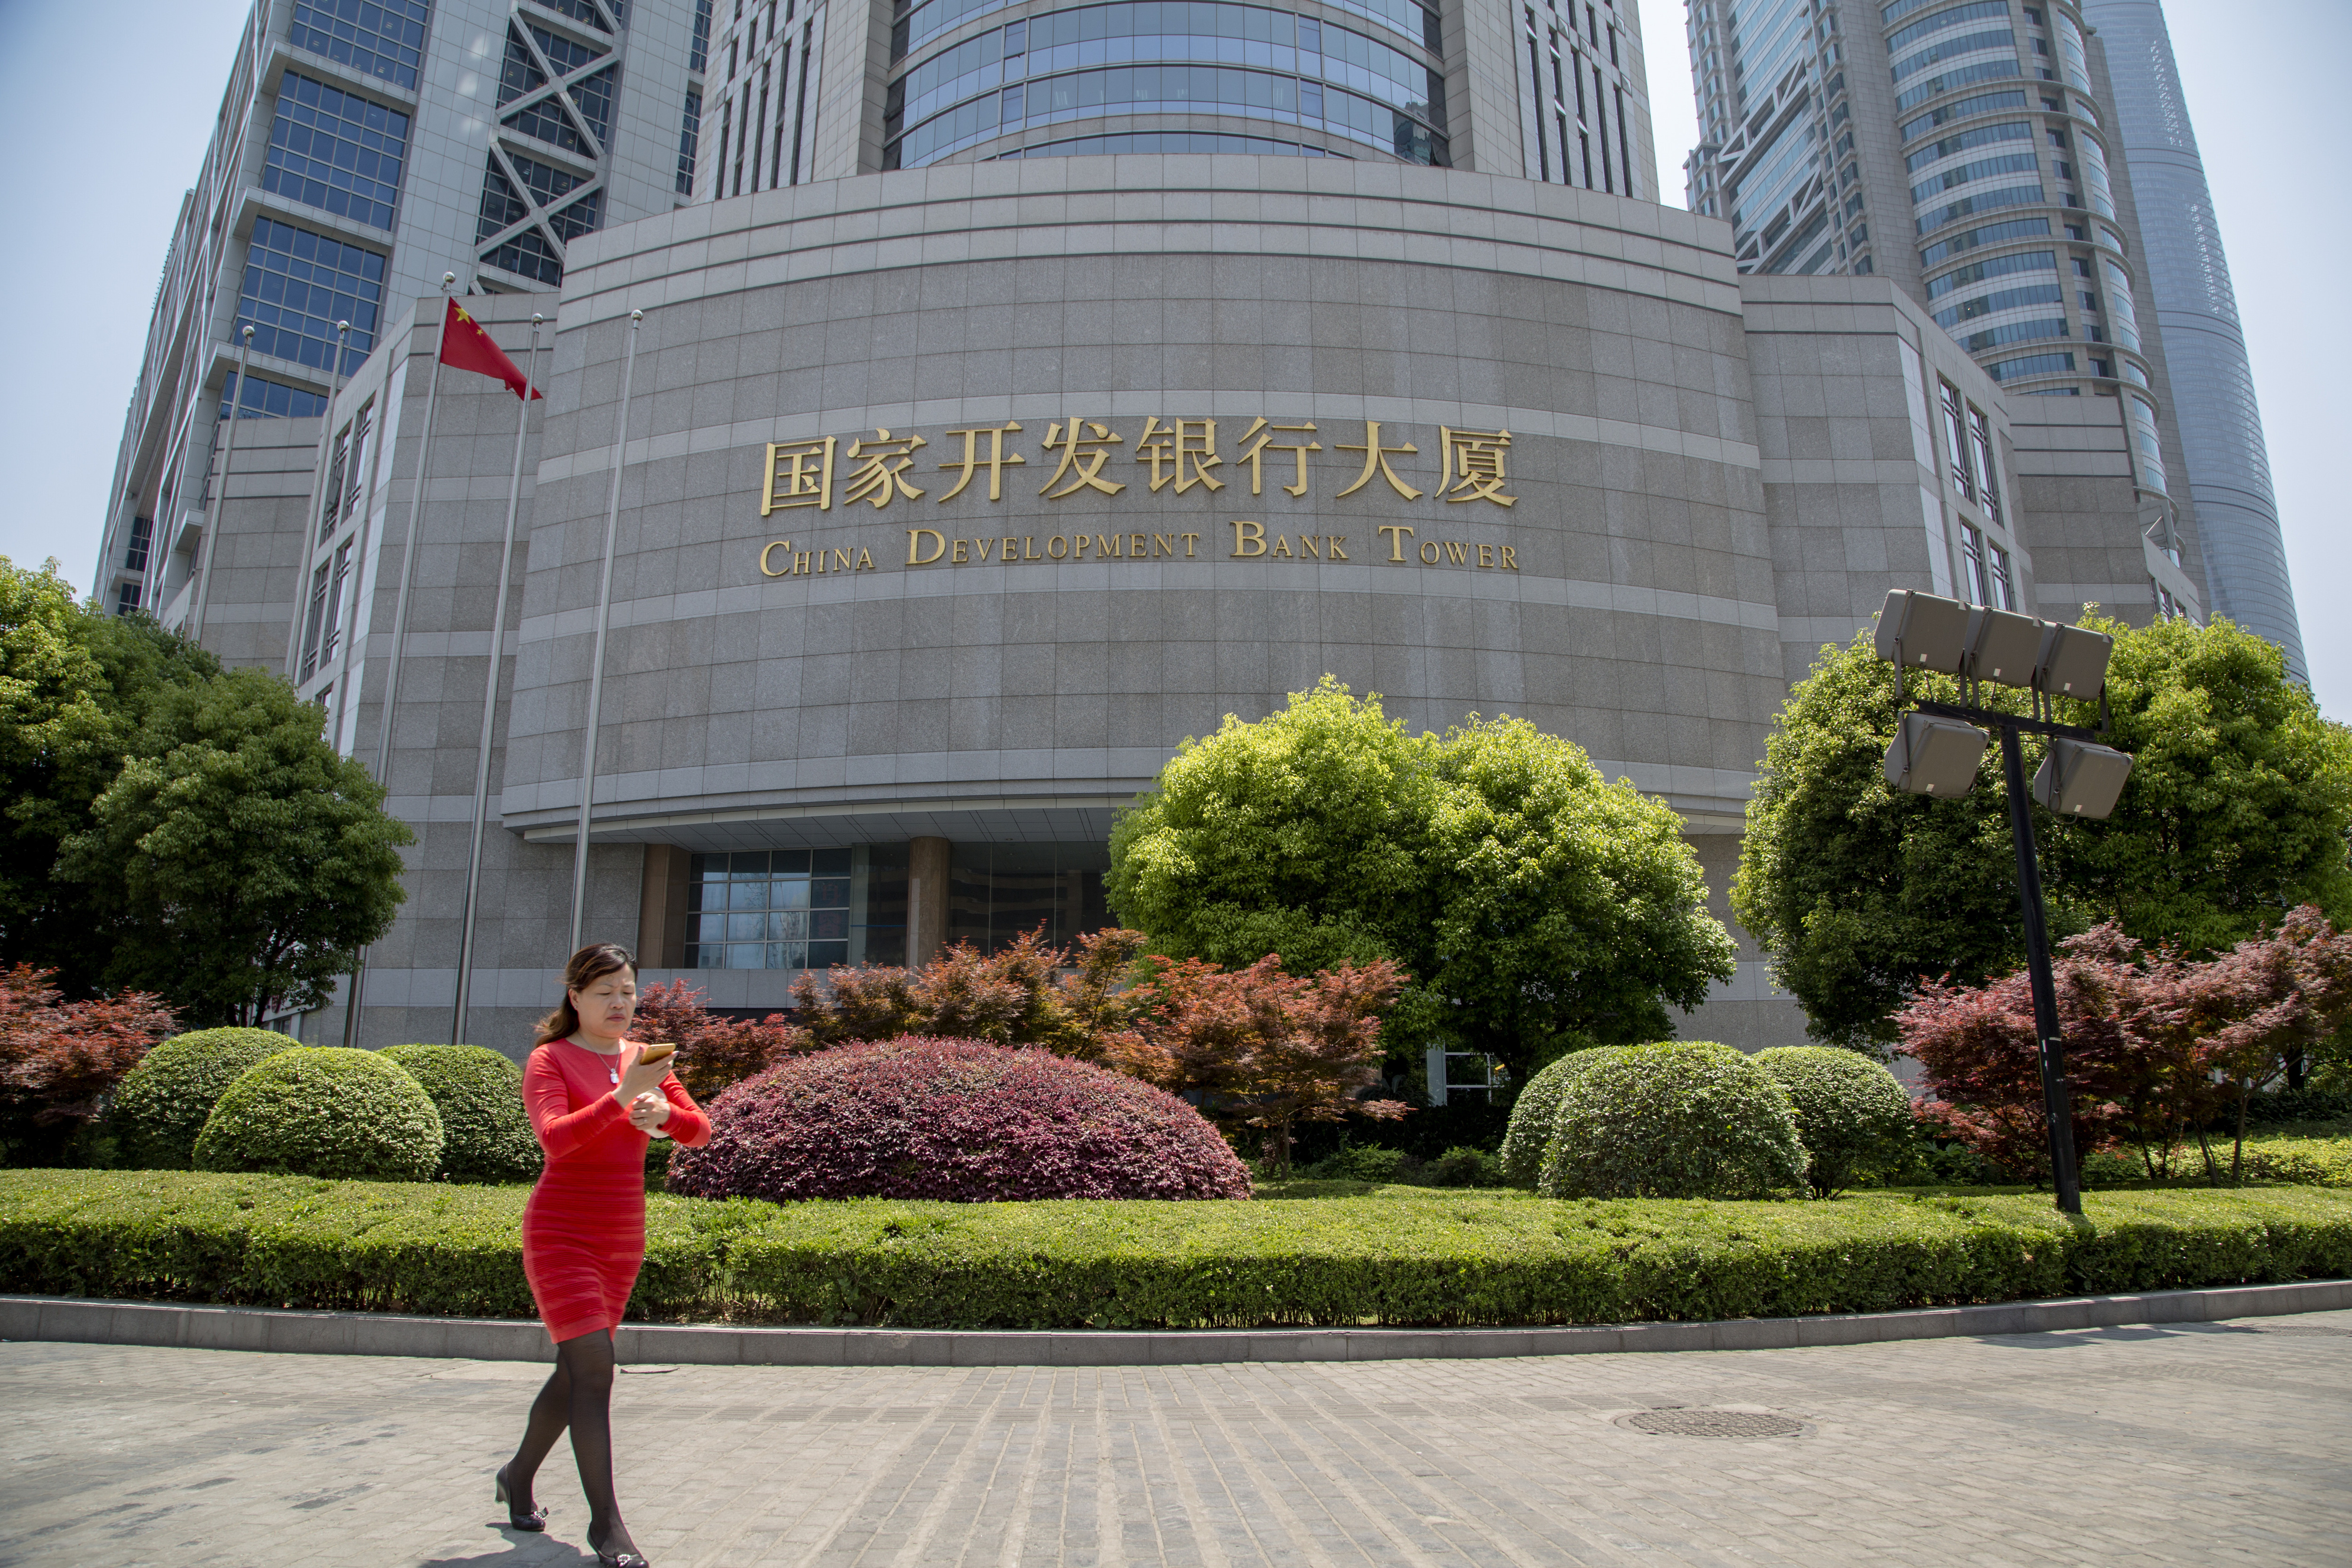 A lady walks in front of China Development Bank tower in